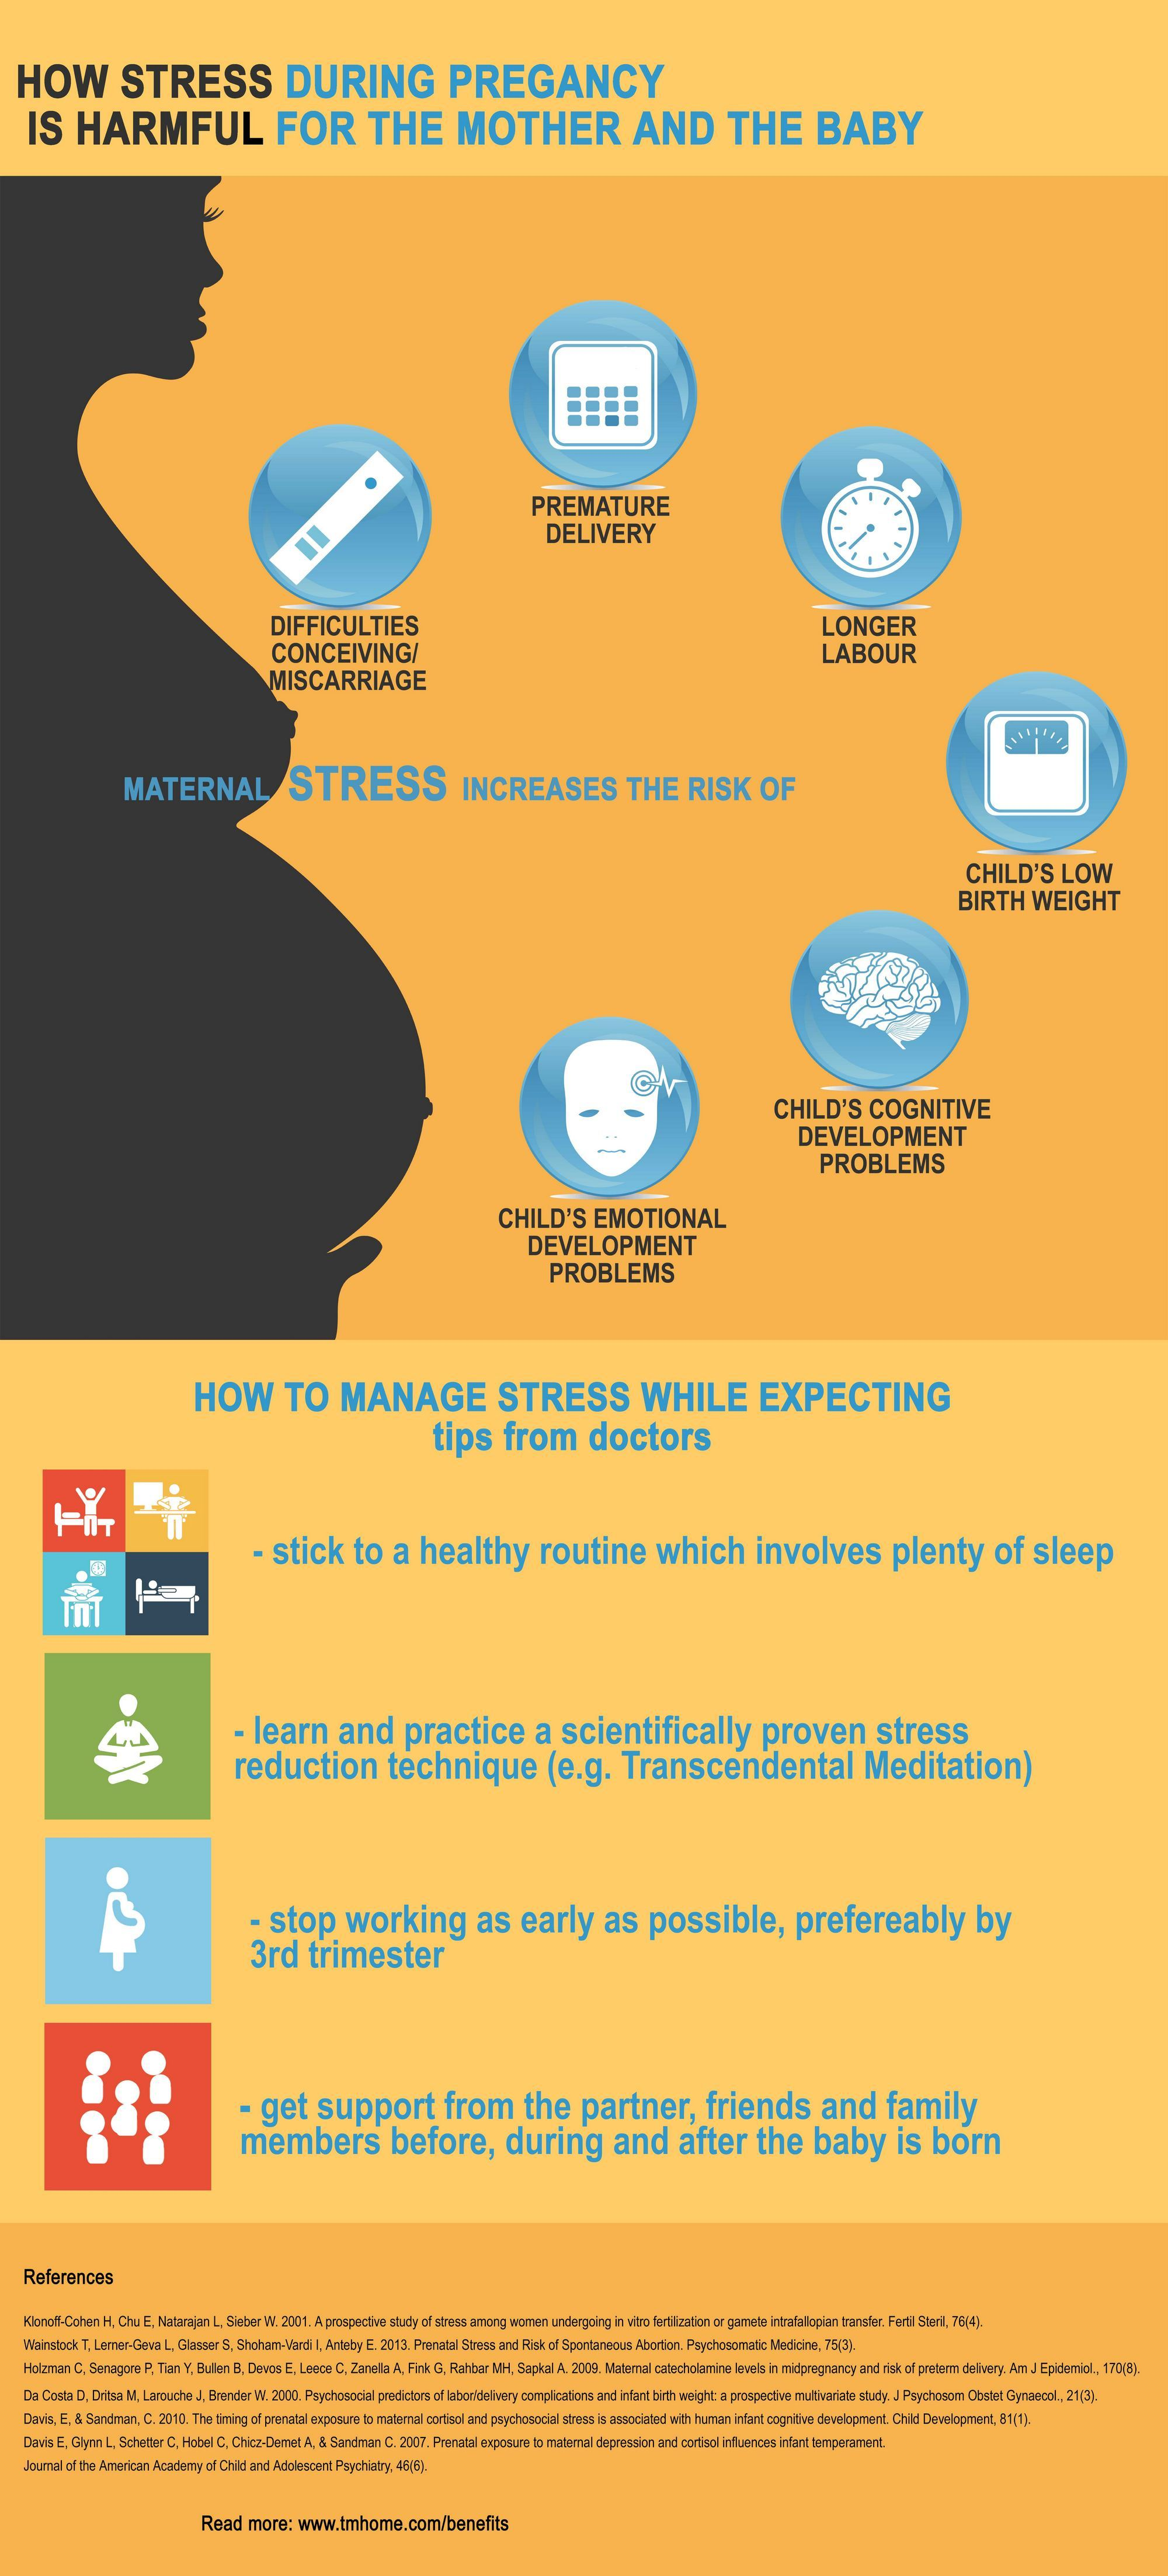 How Stress During Pregnancy Is Harmful For The Mother And The Baby